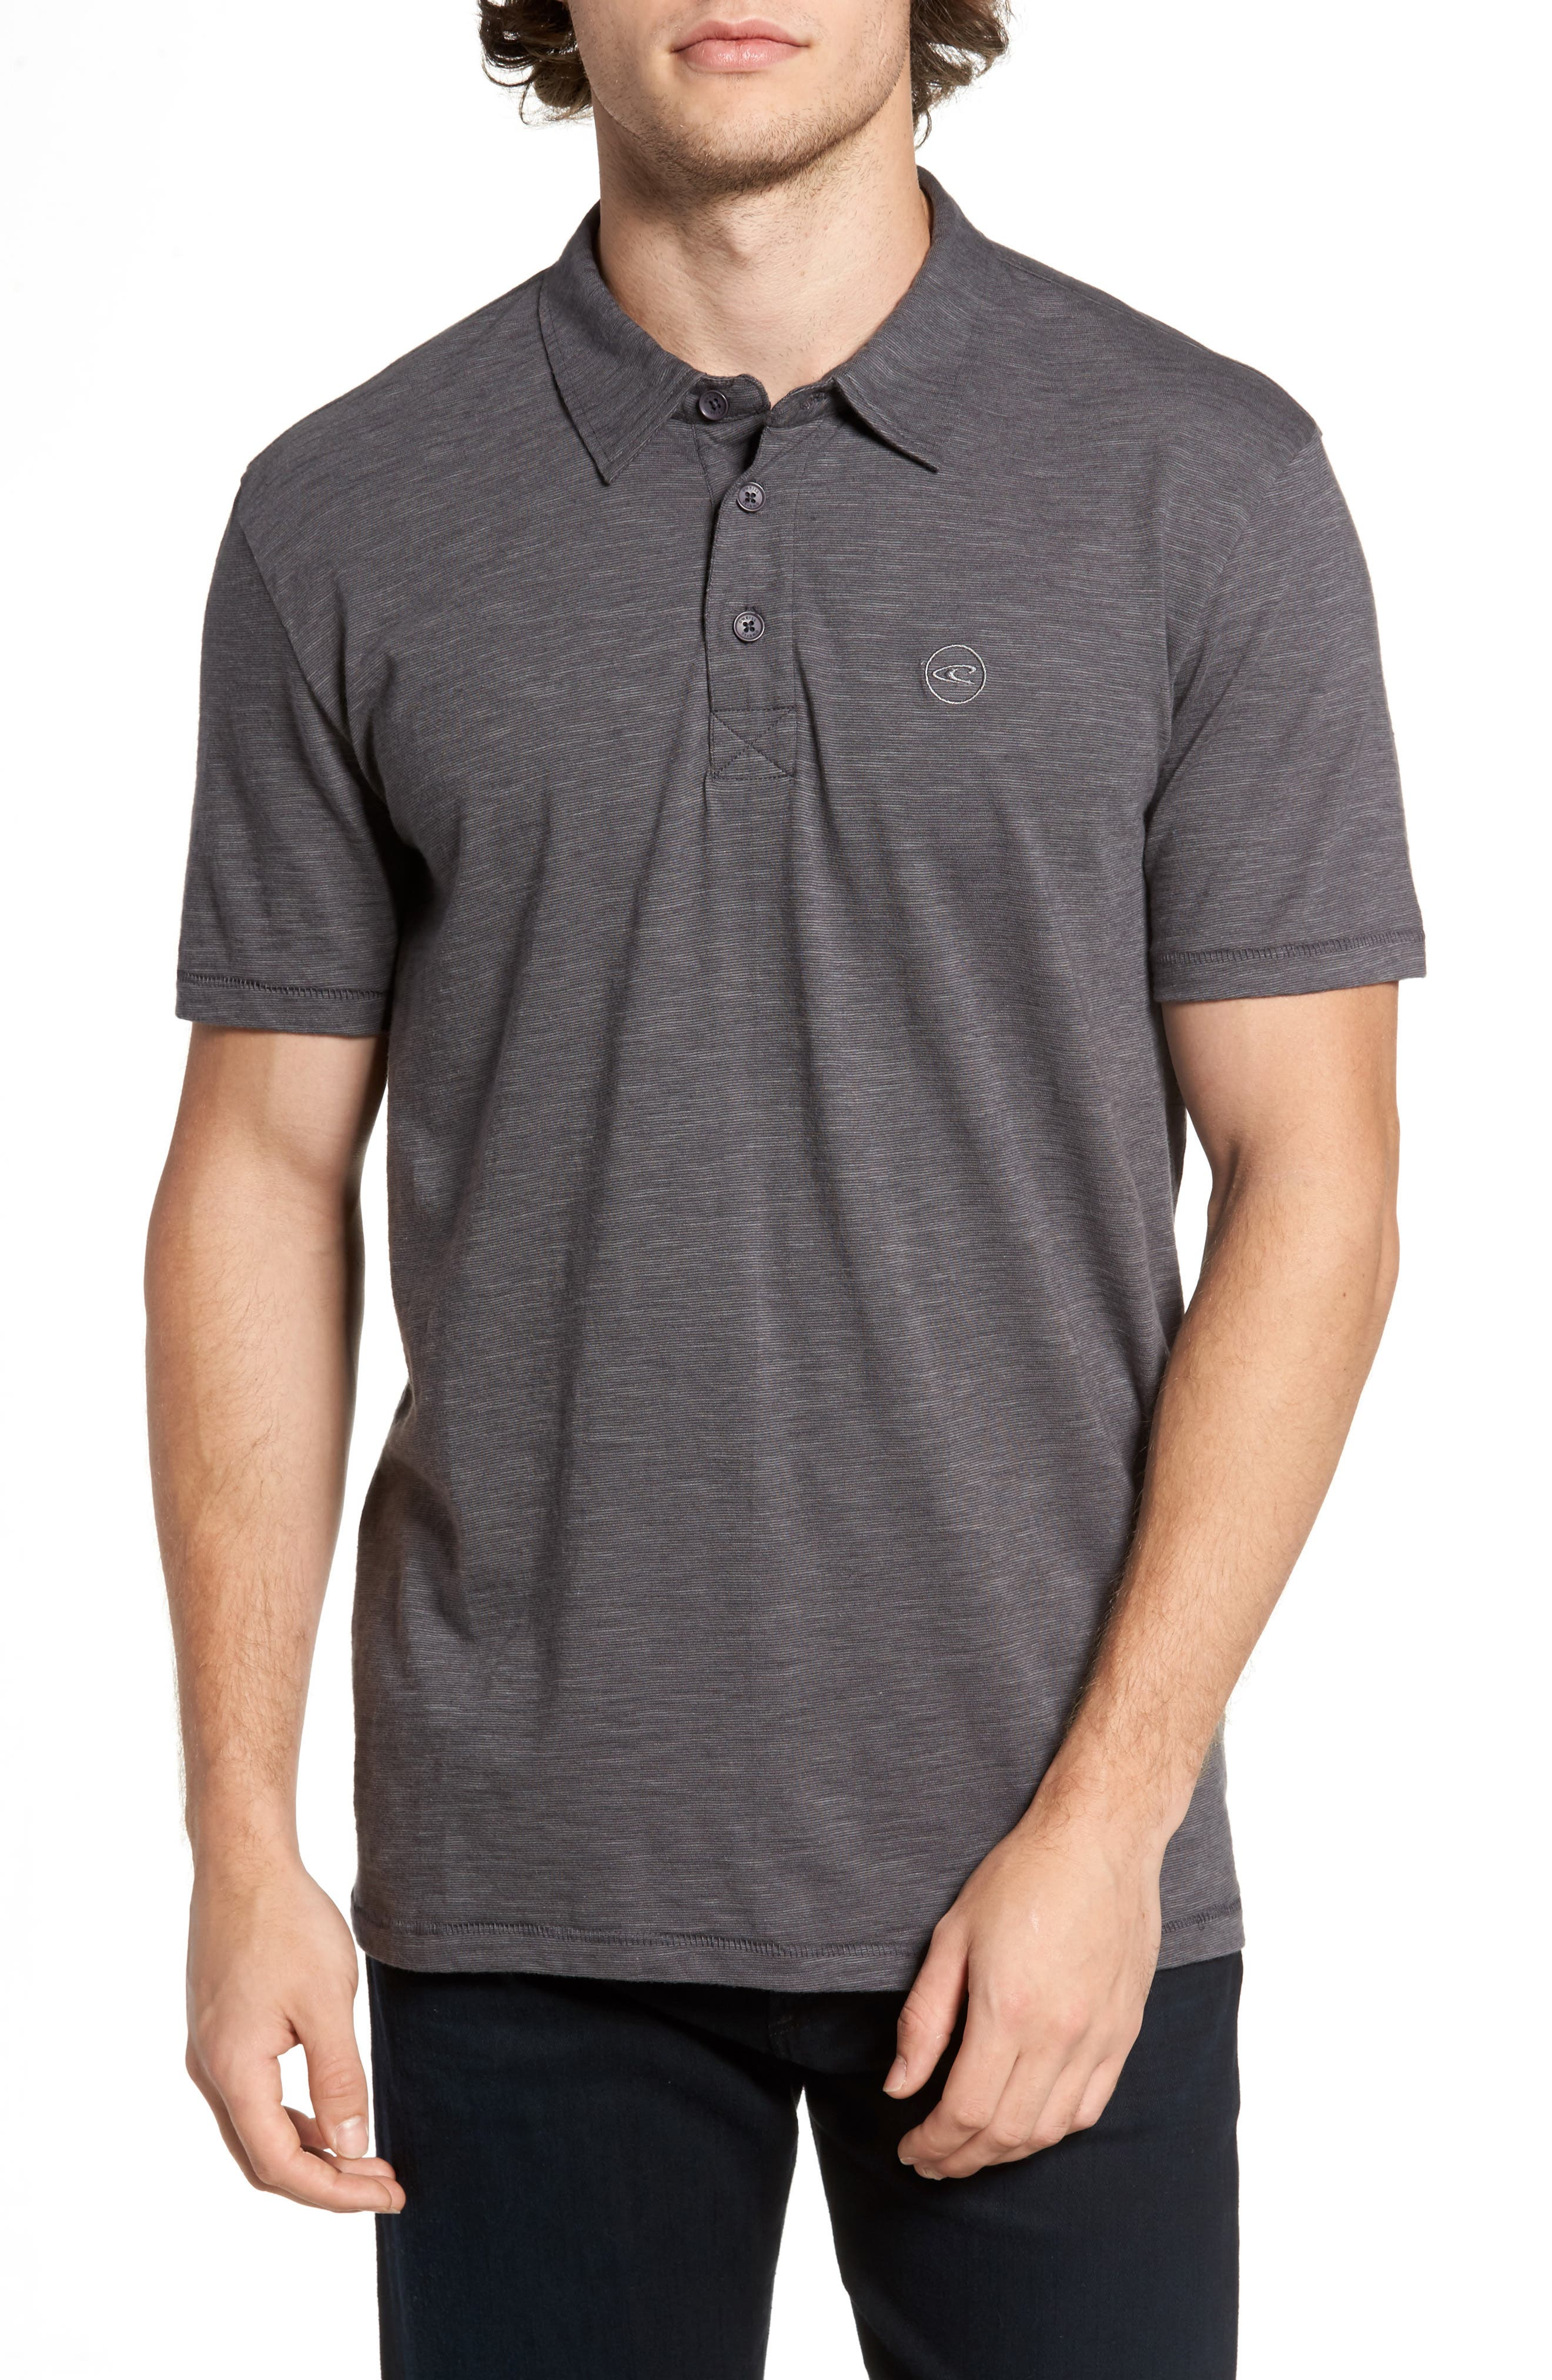 ONEILL The Bay Jersey Polo